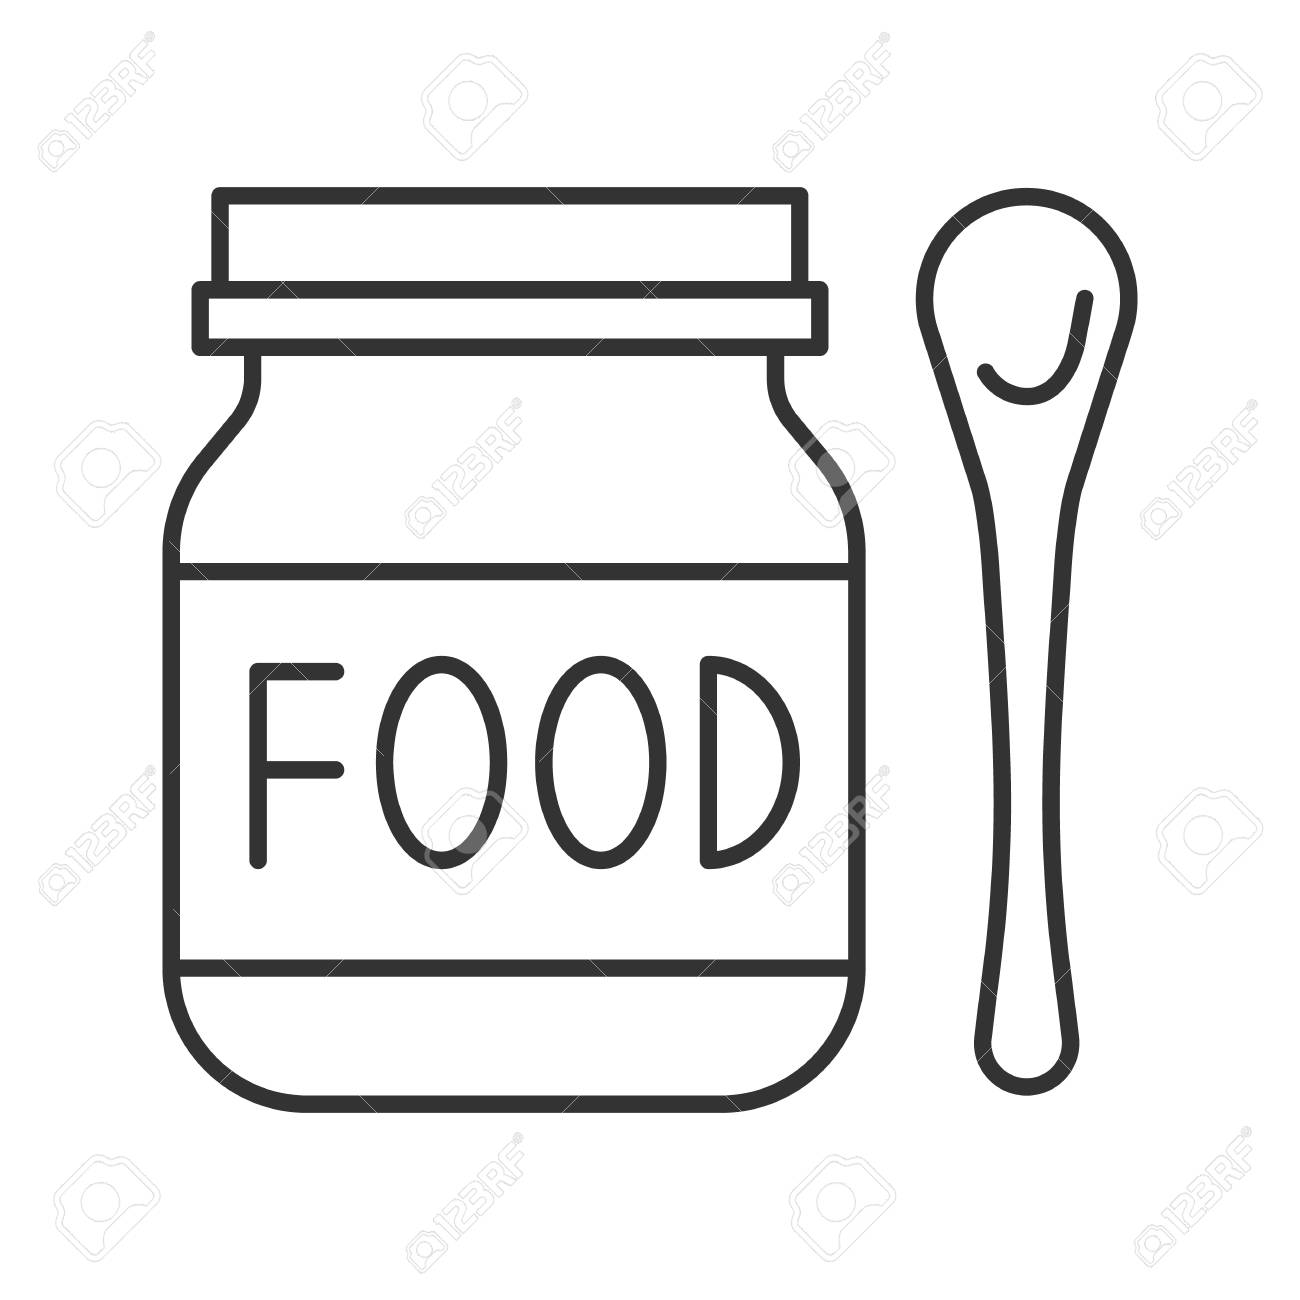 Baby food linear icon. Healthy nutrition. Thin line illustration.